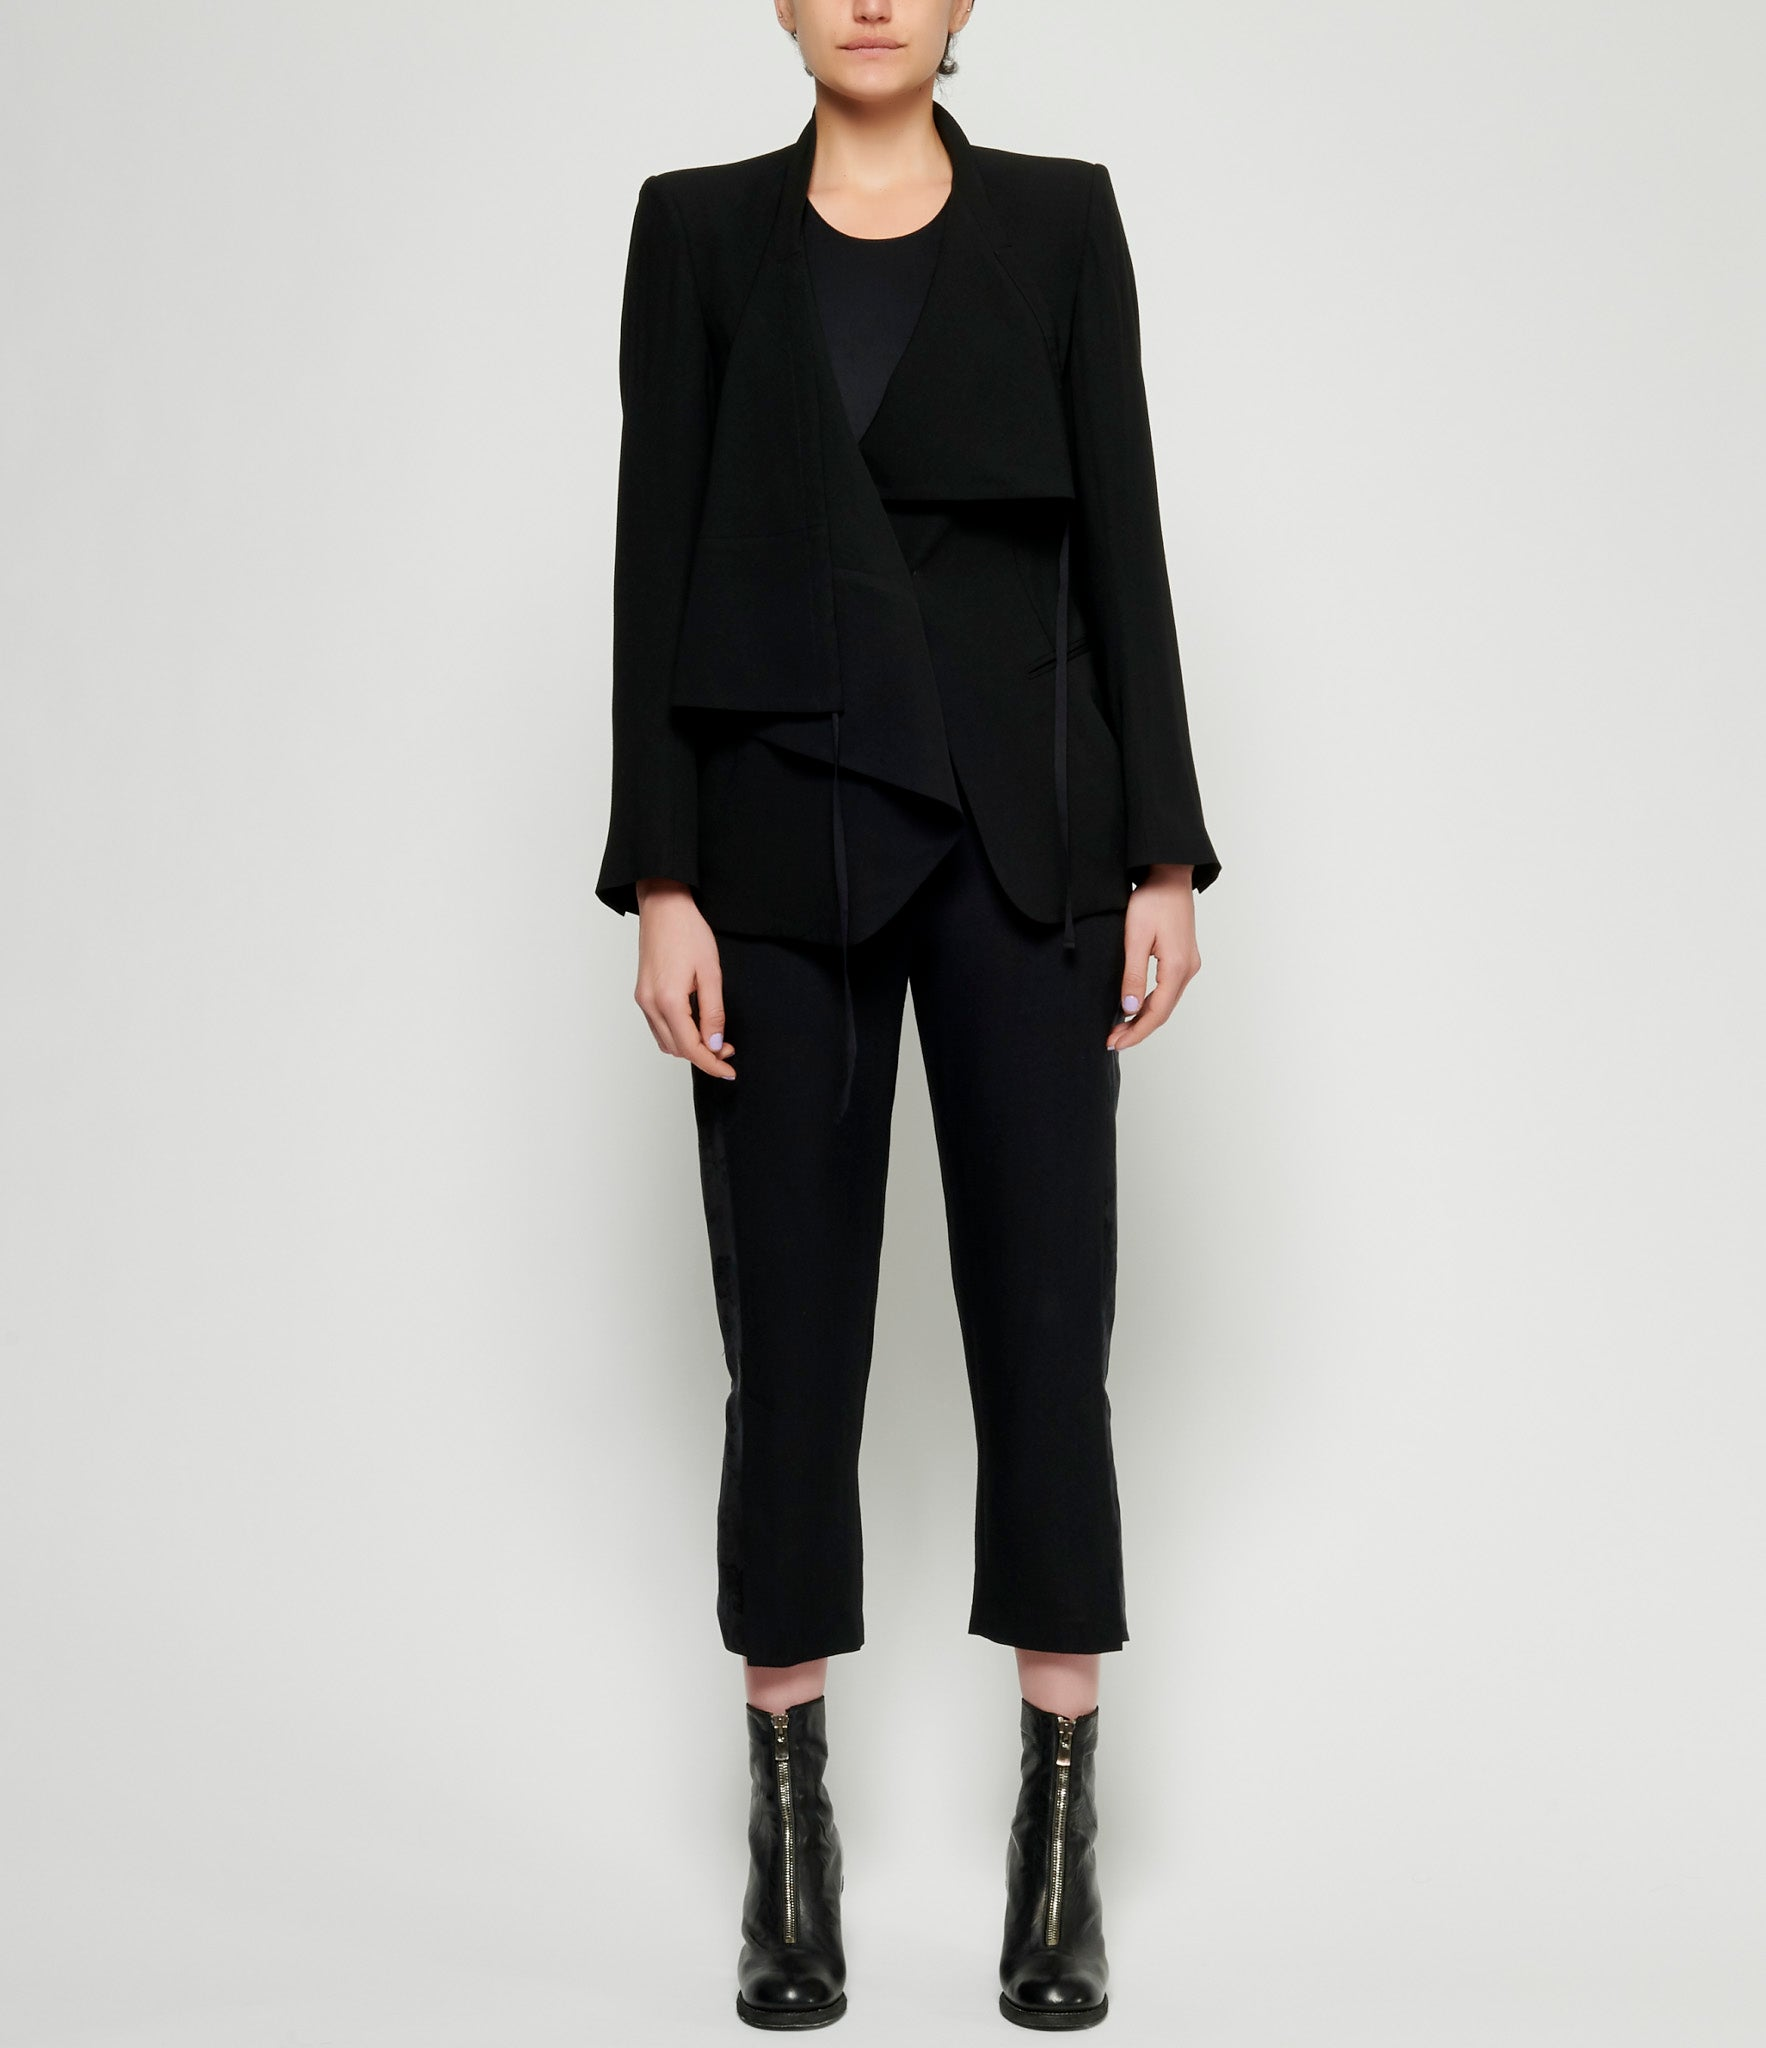 Ann Demeulemeester Wool Viscose Black Jacket